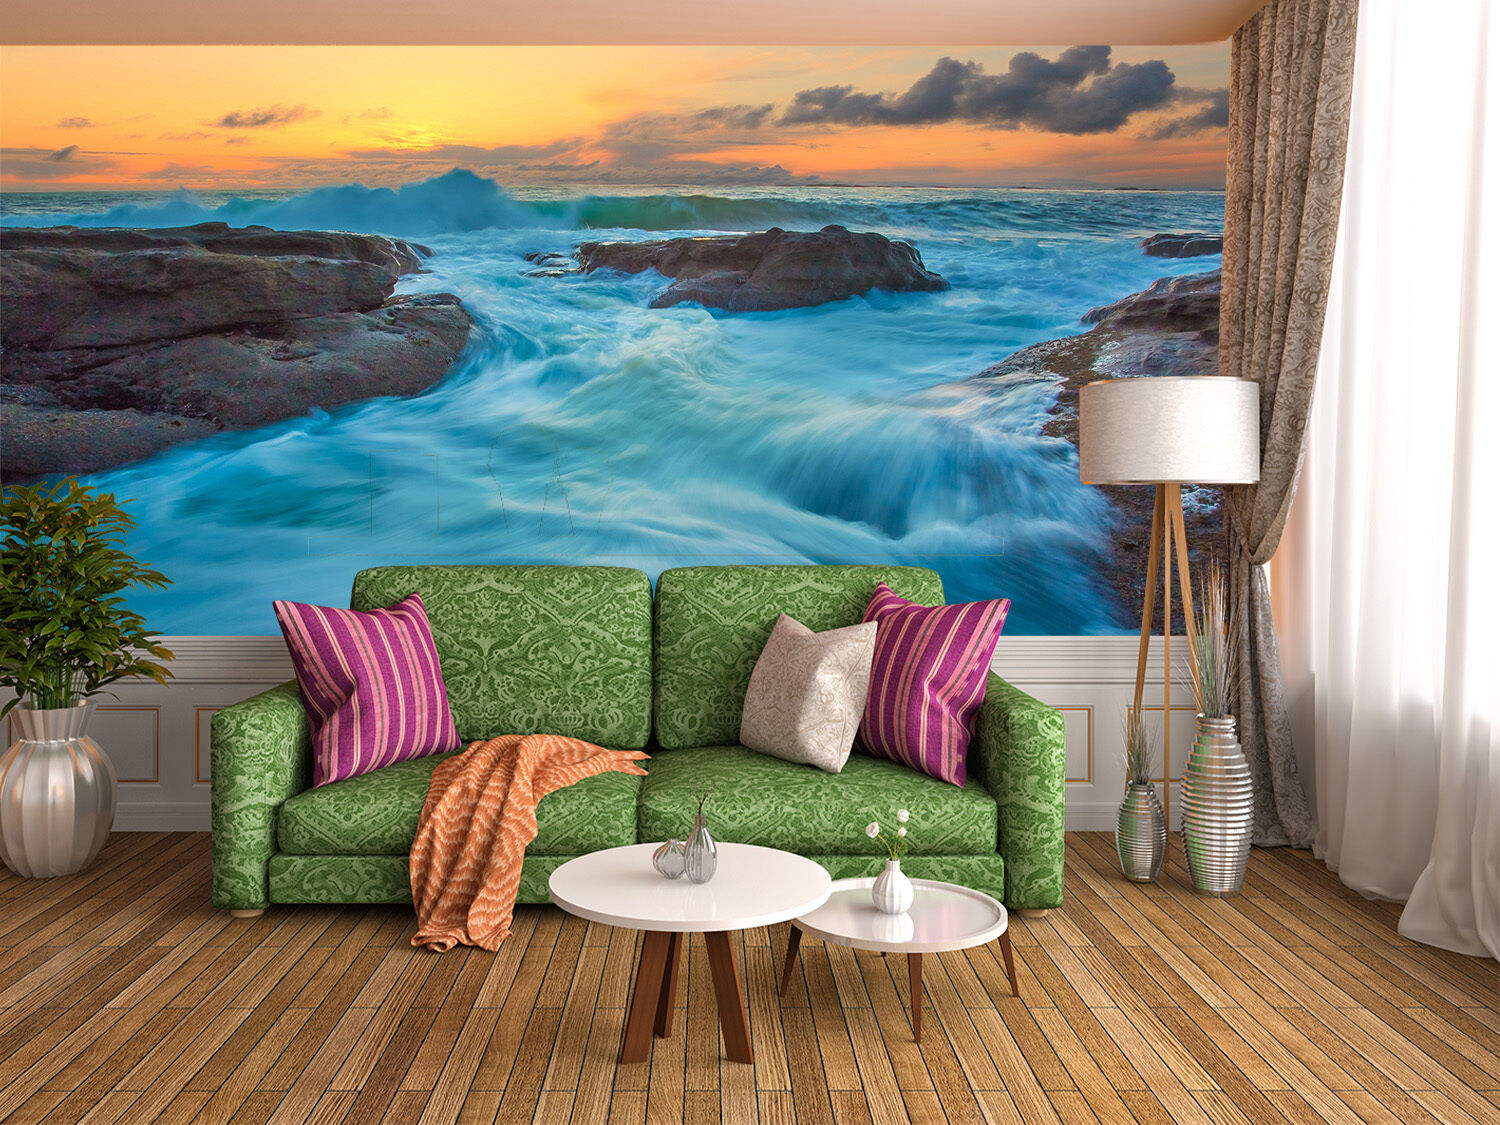 3D Blau sea, sky 6767 Wall Paper Print Wall Decal Deco Indoor Wall Murals